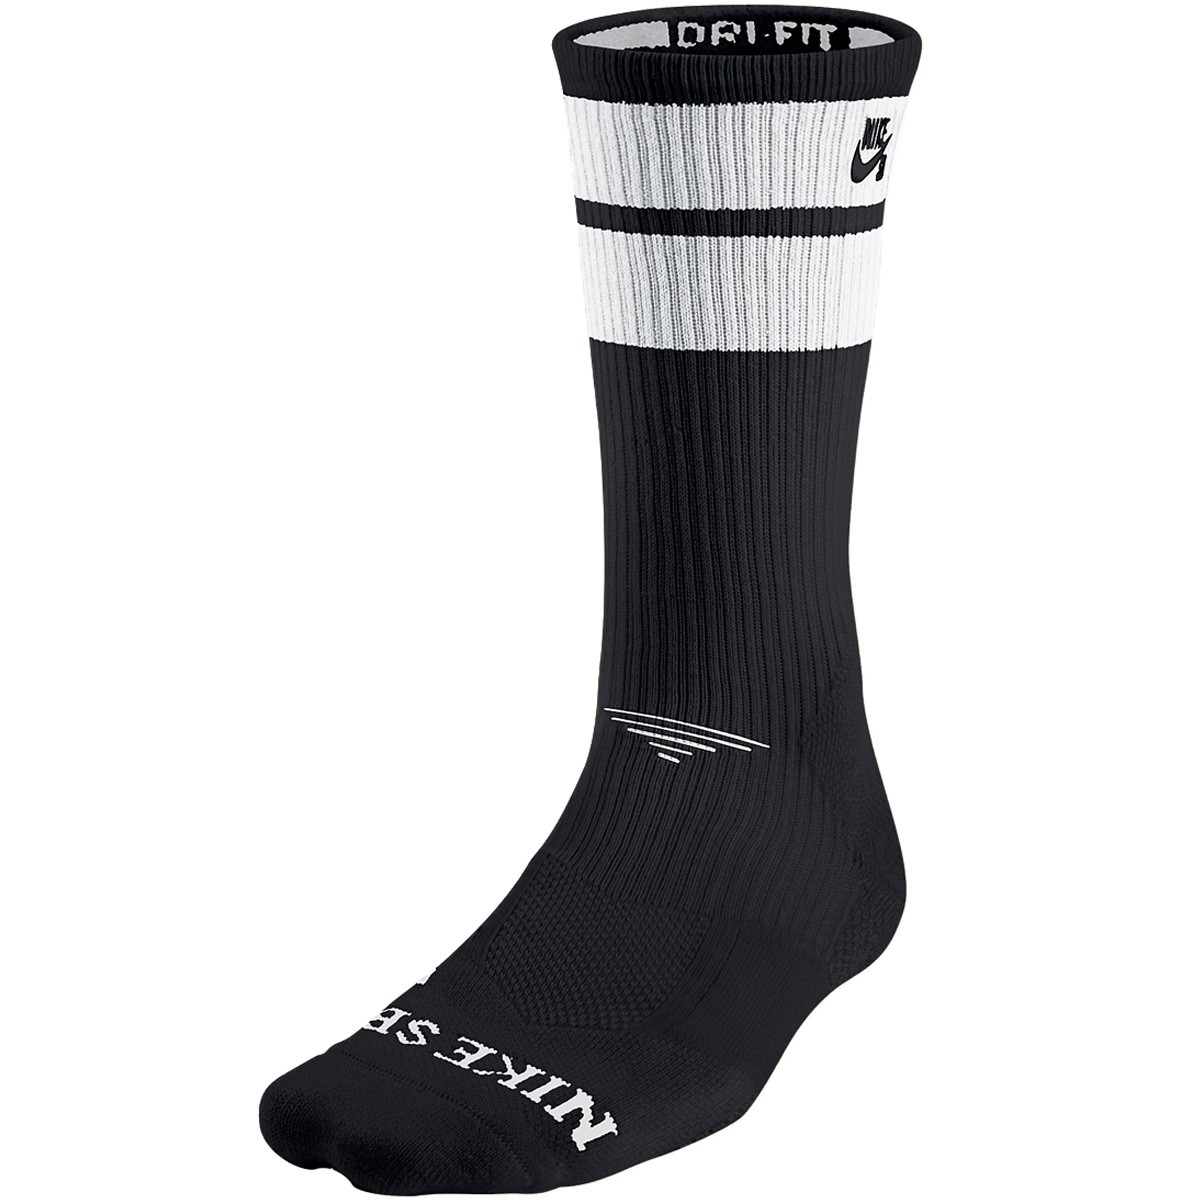 nike elite sb skate crew socks black white white black. Black Bedroom Furniture Sets. Home Design Ideas